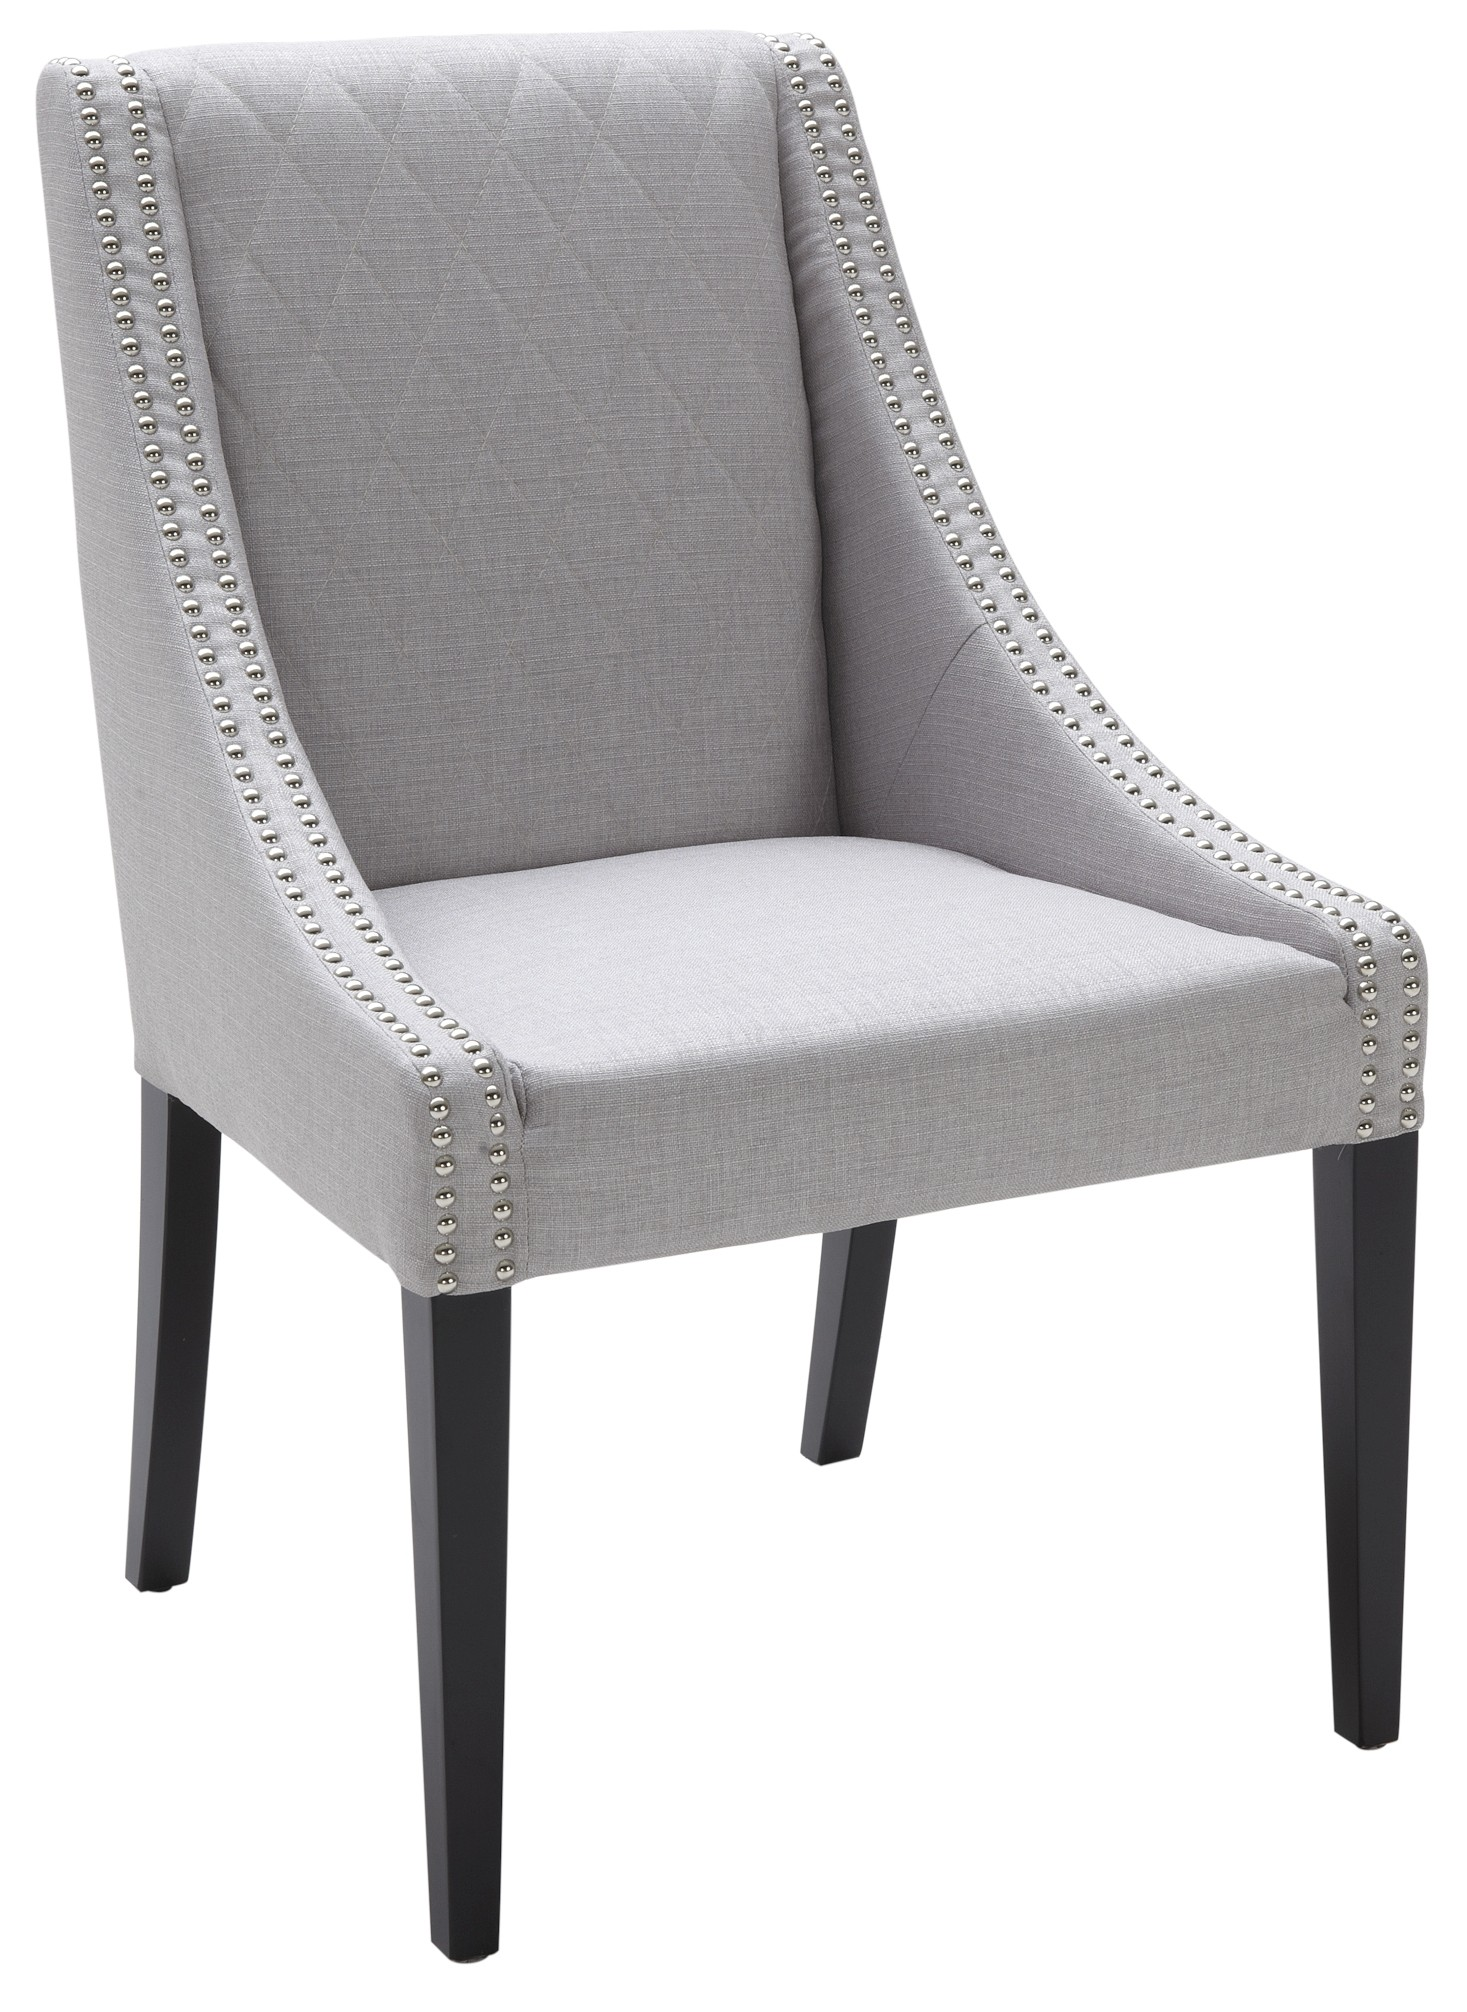 Silver Dining Chairs Malabar Dining Chair Fabric In Silver Linen From Sunpan